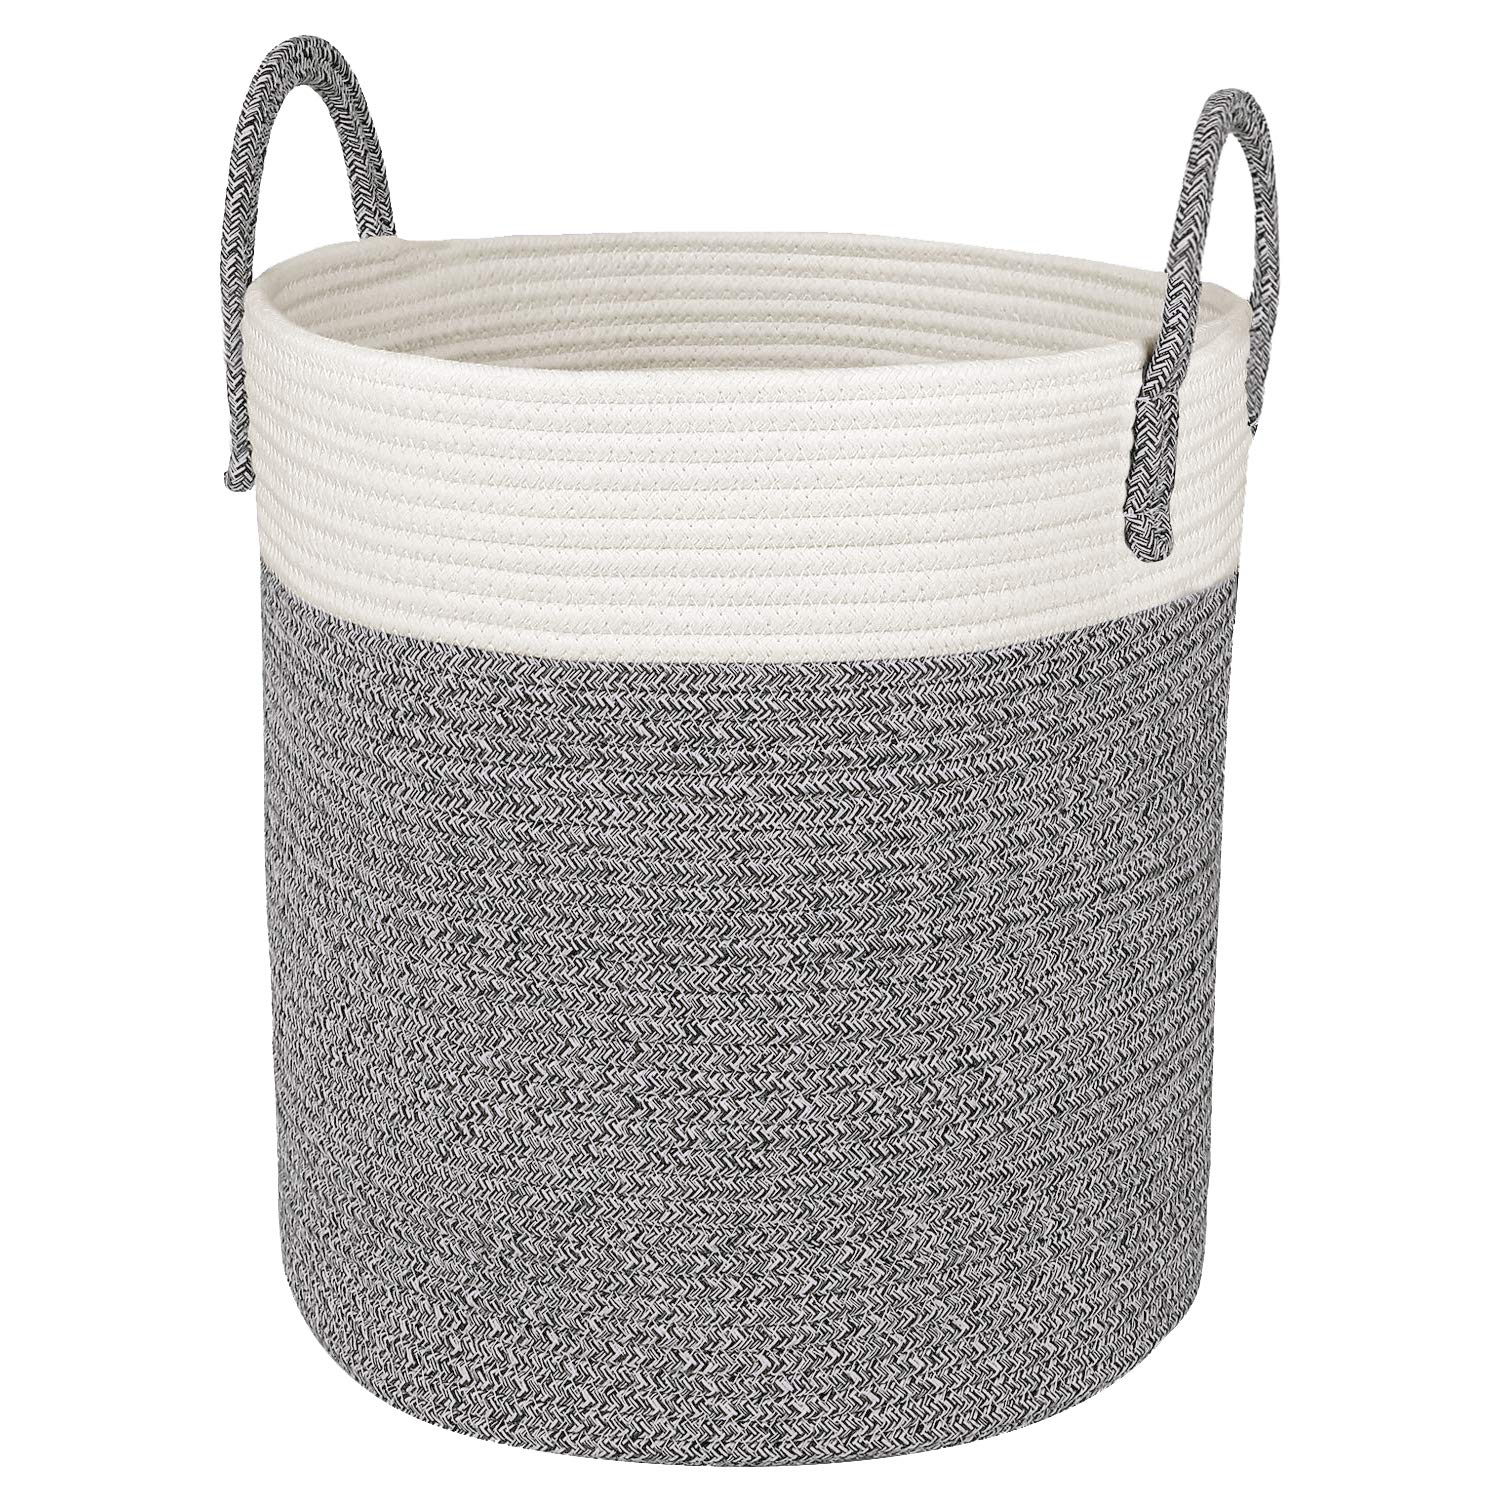 Medium Cotton Rope Basket - 13''x15'' Decorative Woven Basket for Laundry, Baby, Blanket, Towels, Home Storage Container (Grey) by CherryNow